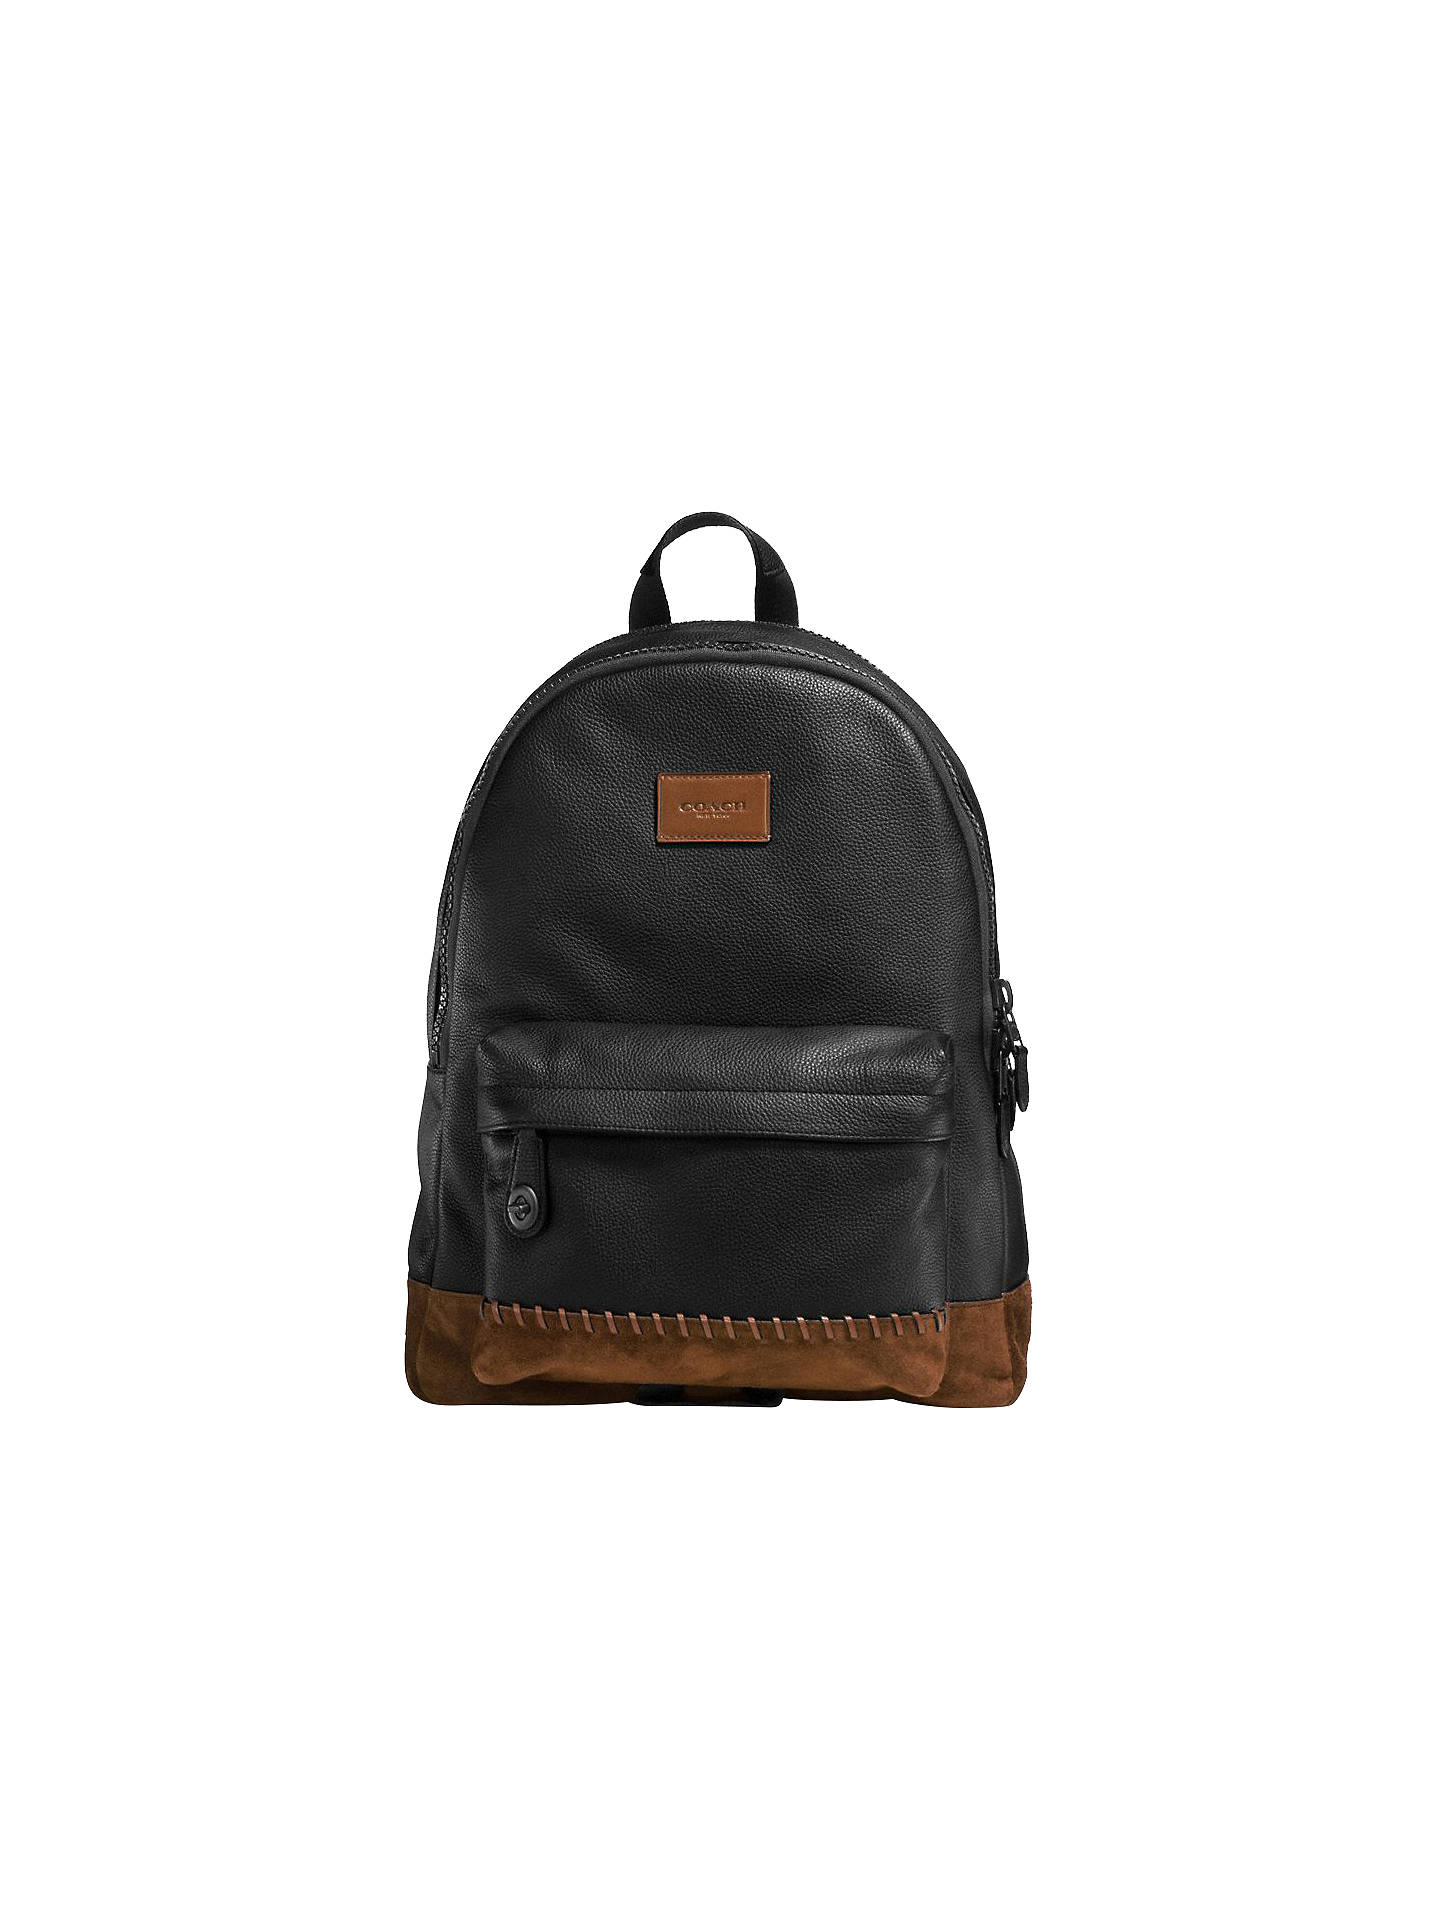 c54113875 coupon code for buycoach campus backpack black mahogany online at johnlewis  9094e c6a53